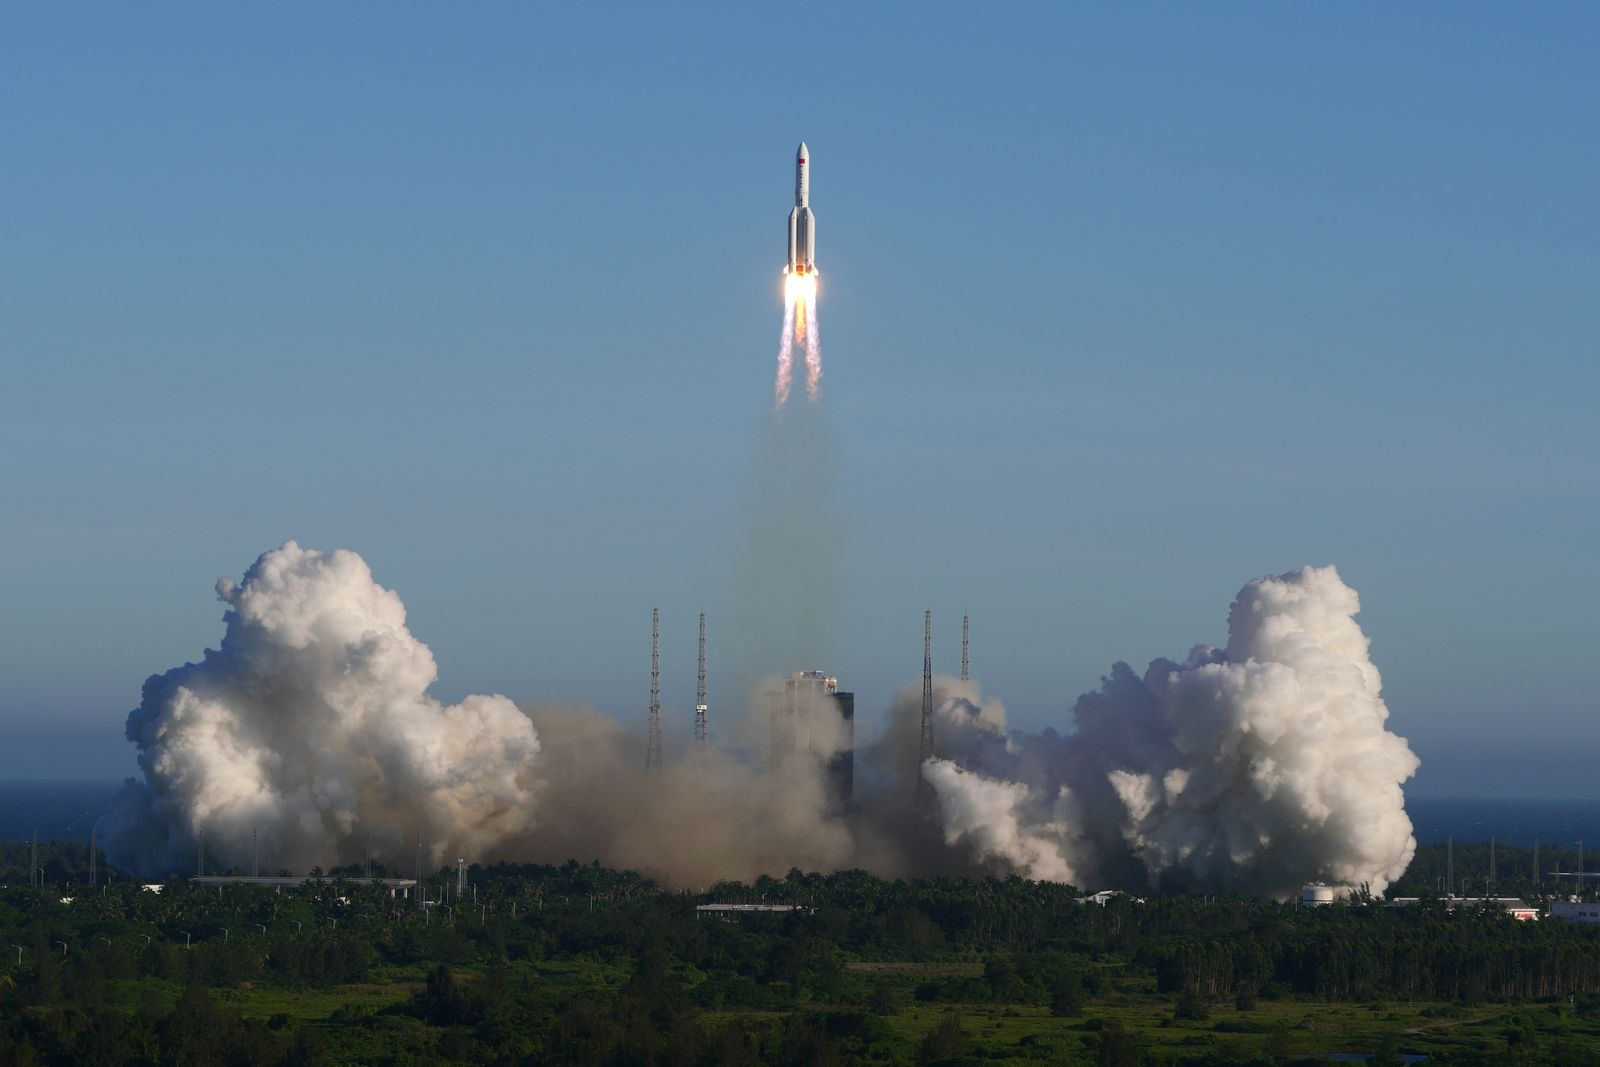 The Long March 5B carrier rocket takes off from Wenchang Space Launch Center in Wenchang, Hainan